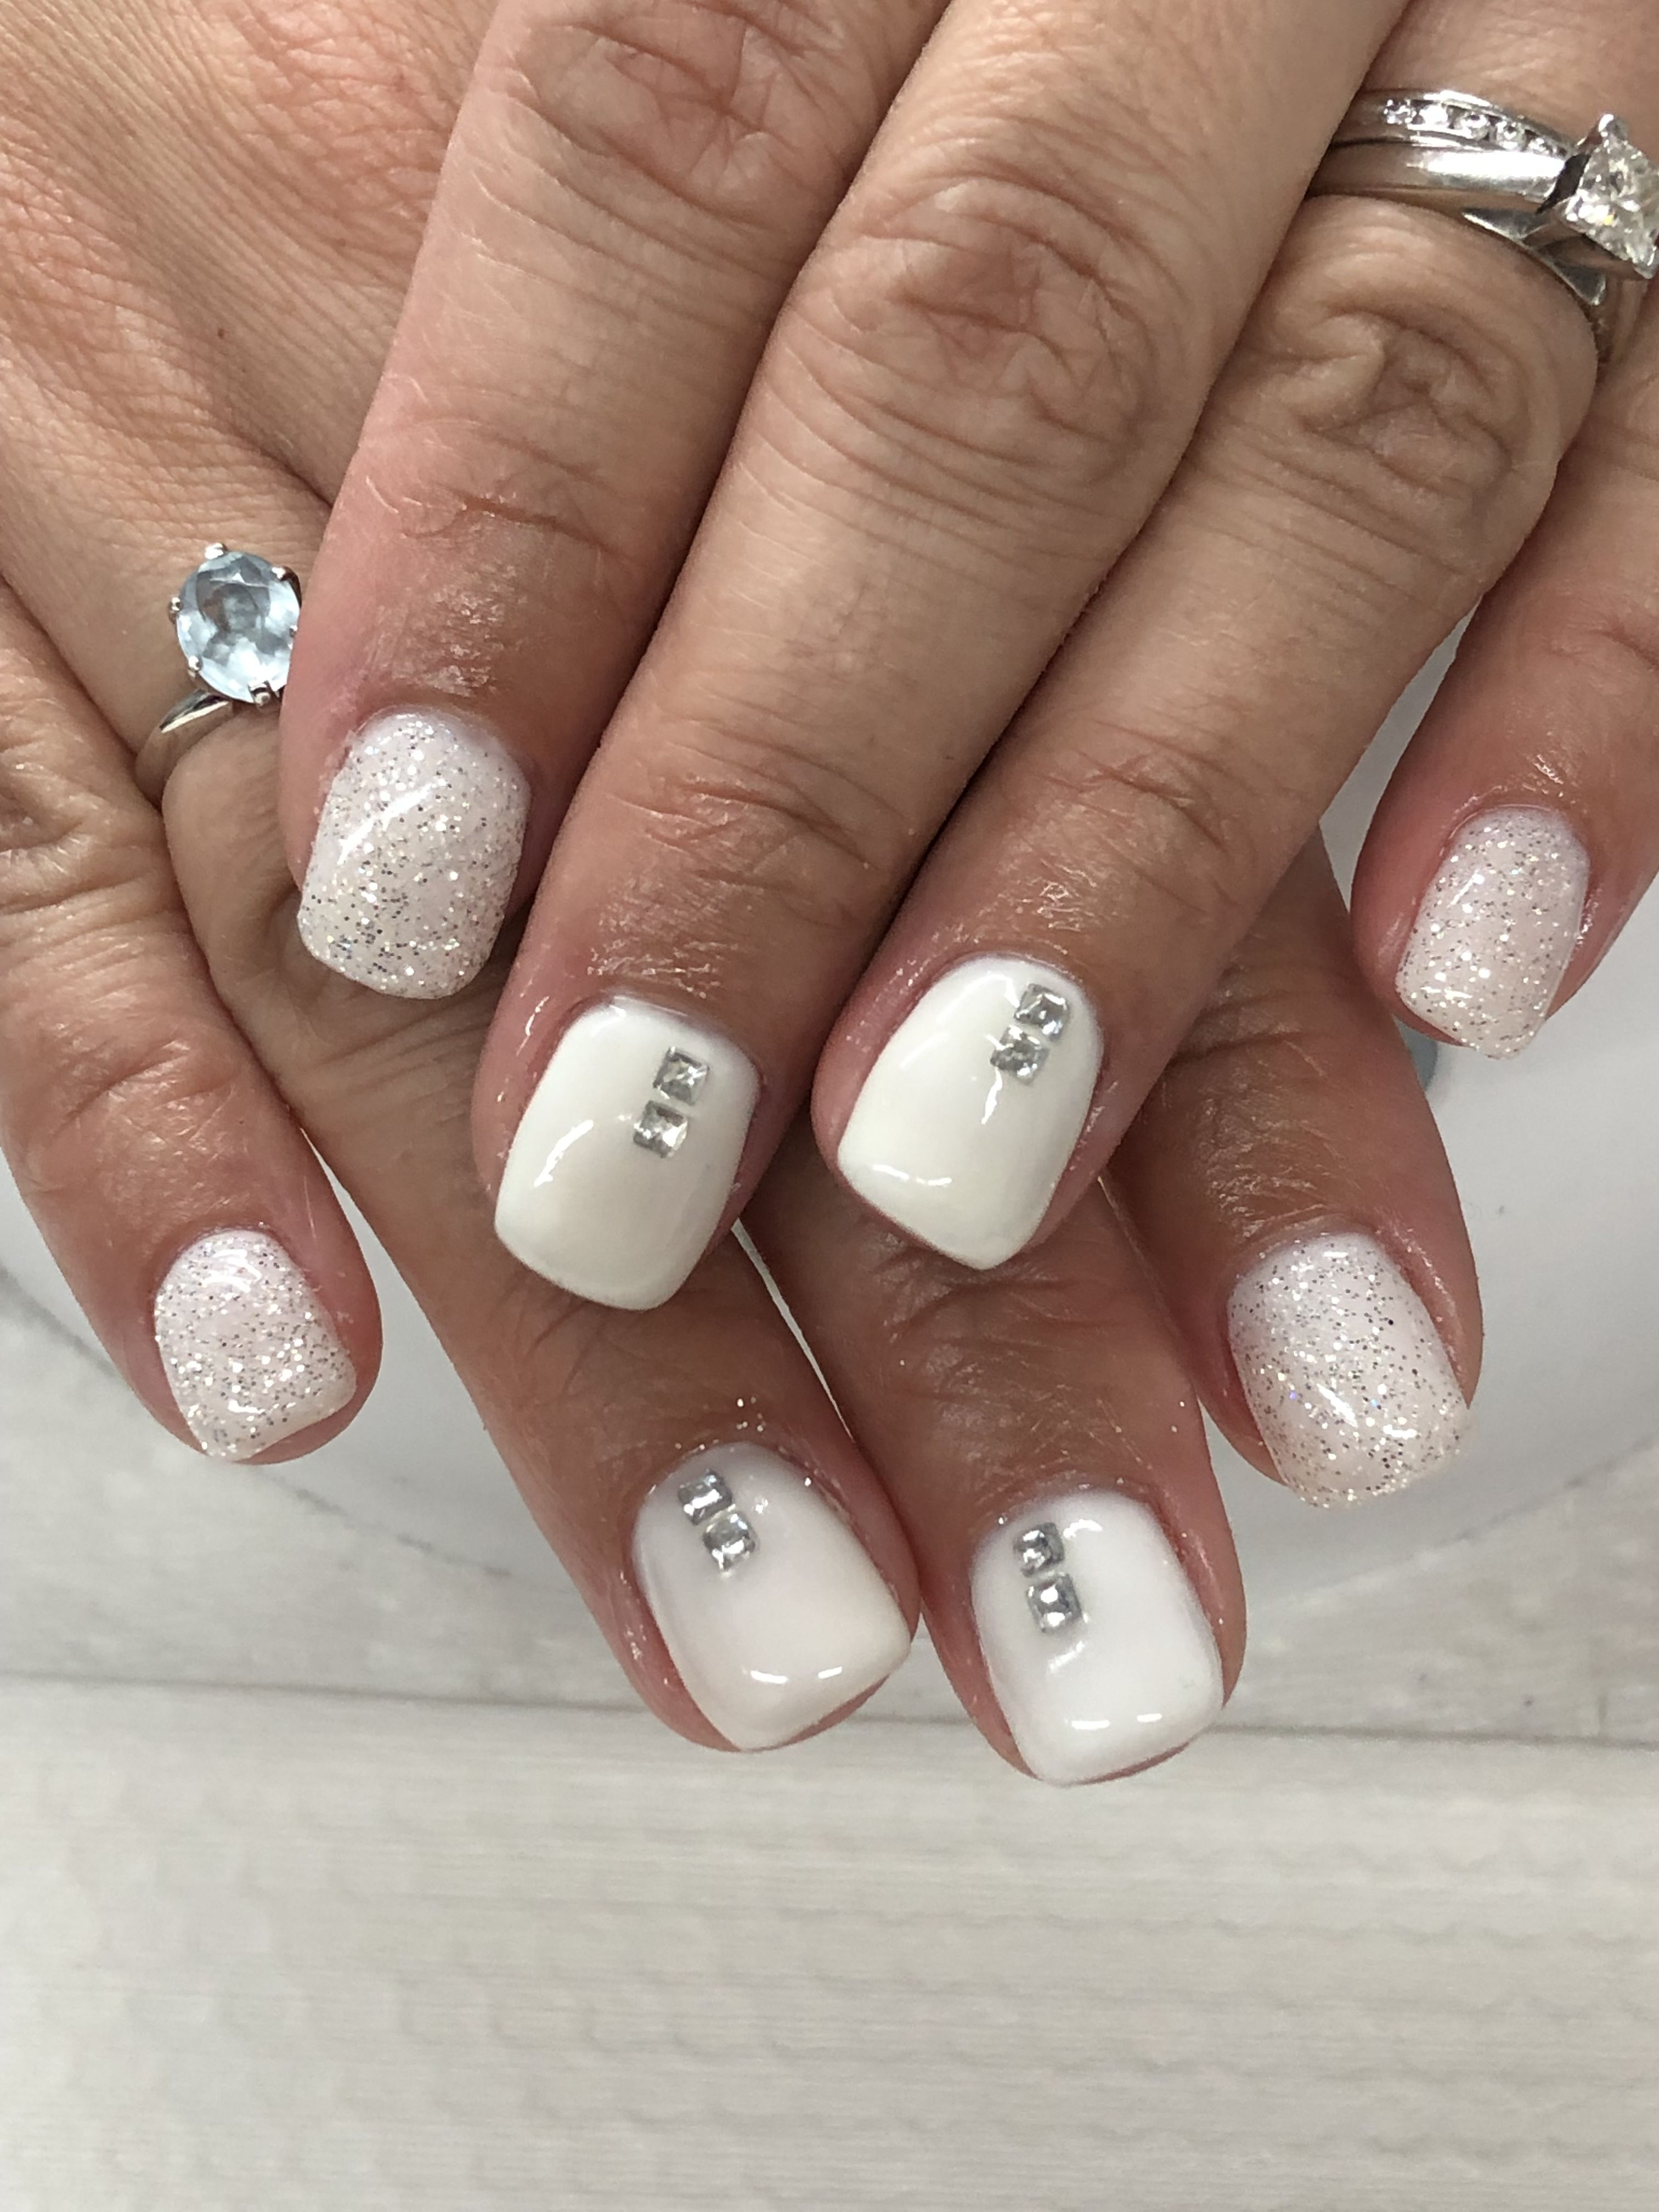 Off White Or Winter White Gel Nails White Gel Nails Gel Nail